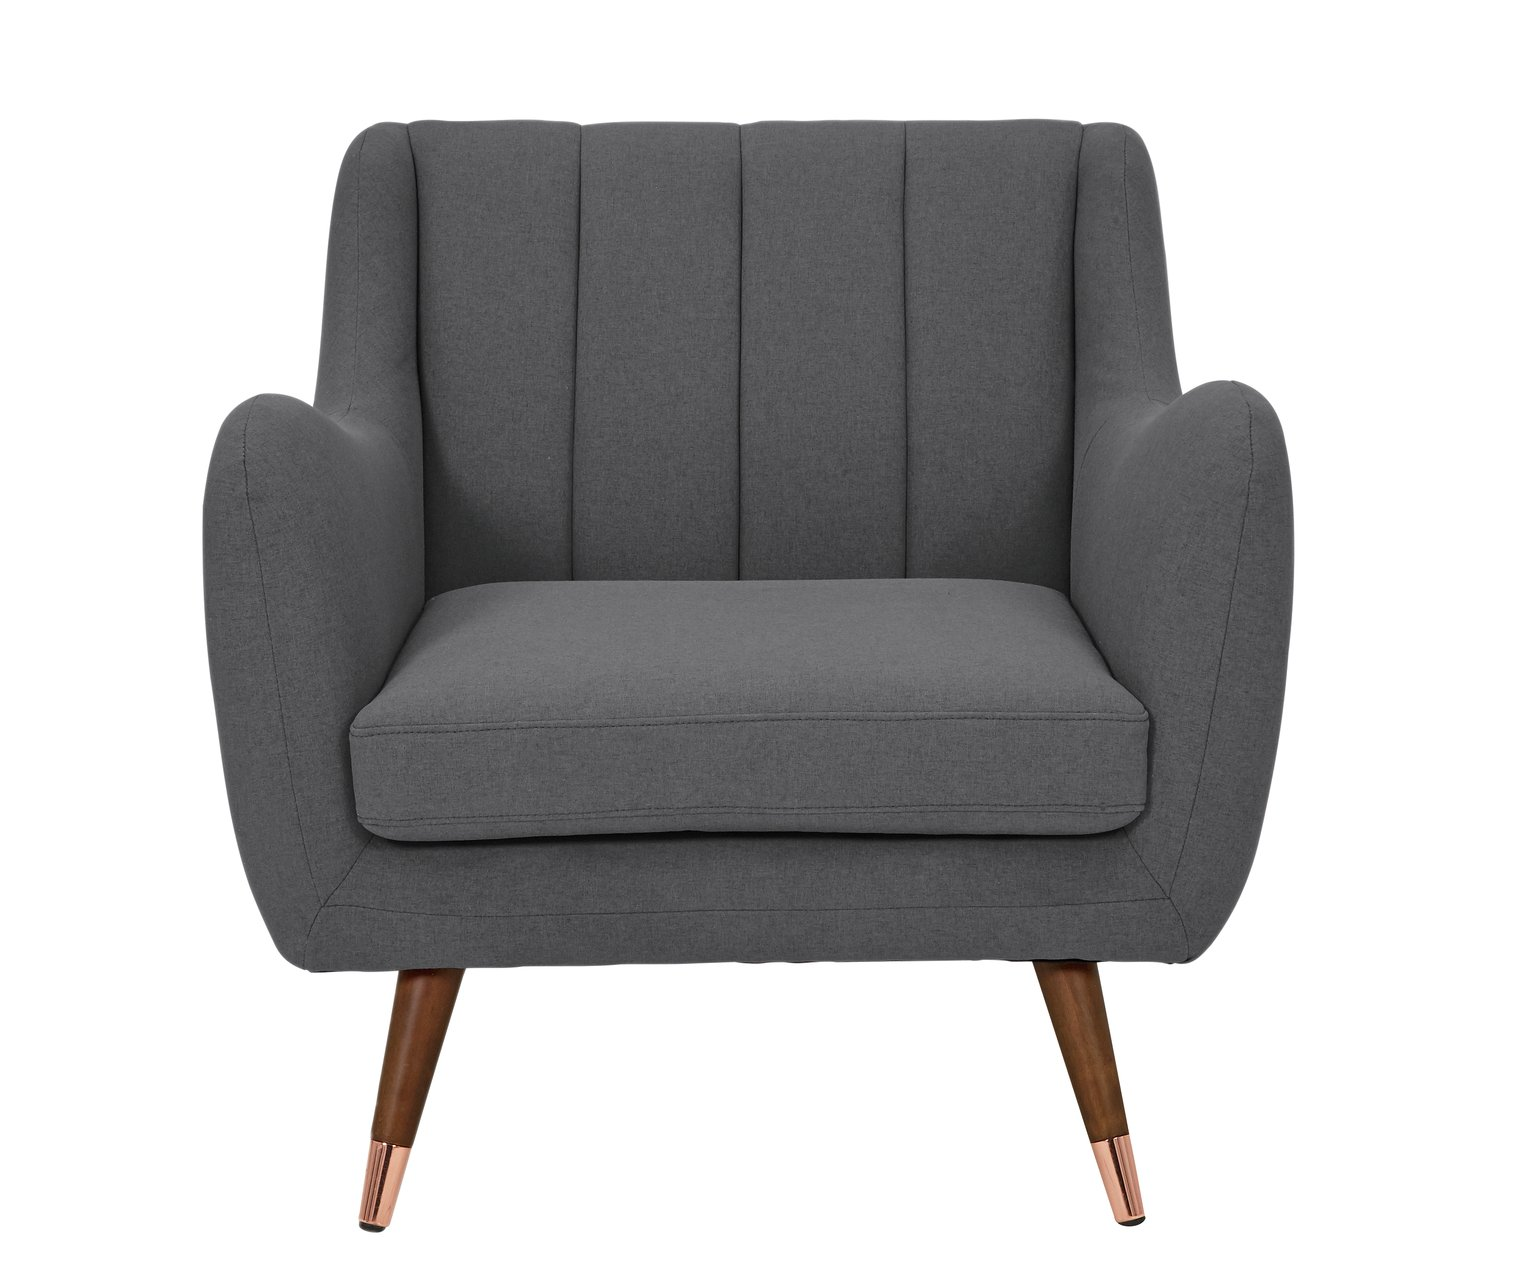 Argos Home Leila Fabric Armchair - Charcoal